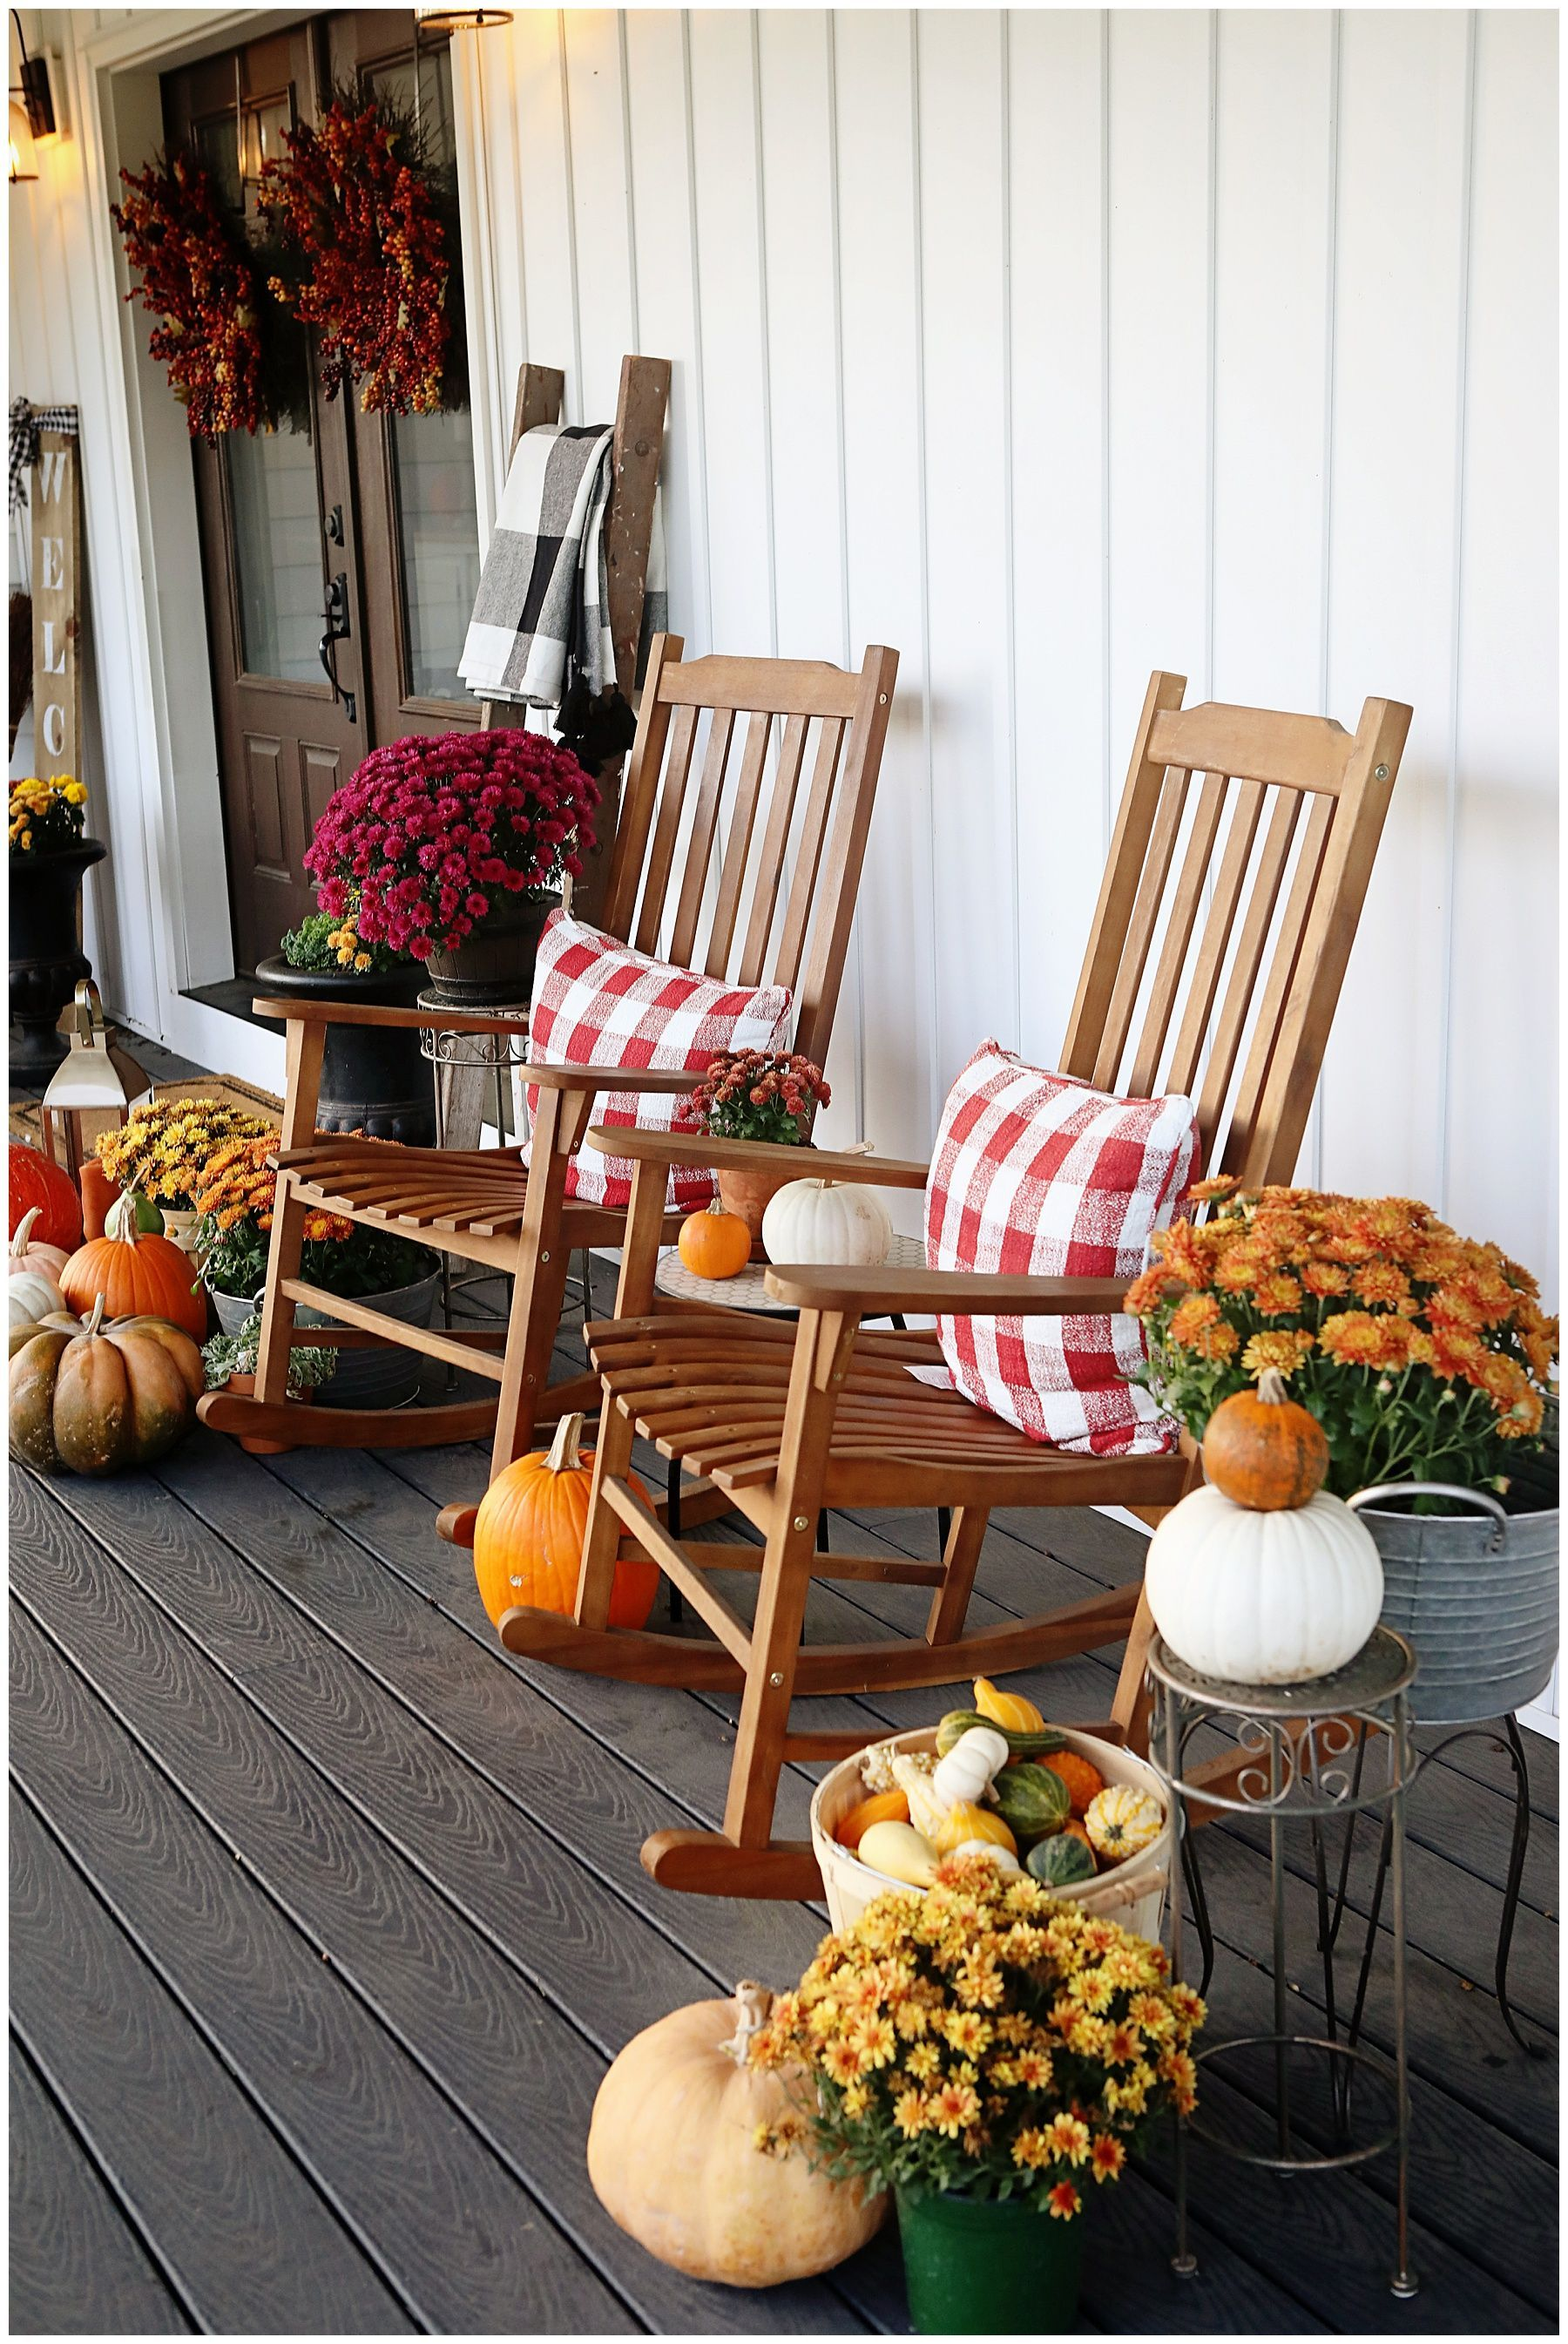 Fall Front Porch Decor #fall #fallfrontporchdecor #fallfrontporch #farmhouse #farmhousedecor #farmhousestyle #farmhouseporch #farmhousestyledecor #modernfarmhouse #modernfarmhousedecor #falldecor #falldecorating #falldecorideas #fallfrontporchdecor Fall Front Porch Decor #fall #fallfrontporchdecor #fallfrontporch #farmhouse #farmhousedecor #farmhousestyle #farmhouseporch #farmhousestyledecor #modernfarmhouse #modernfarmhousedecor #falldecor #falldecorating #falldecorideas #fallfrontporchdecor